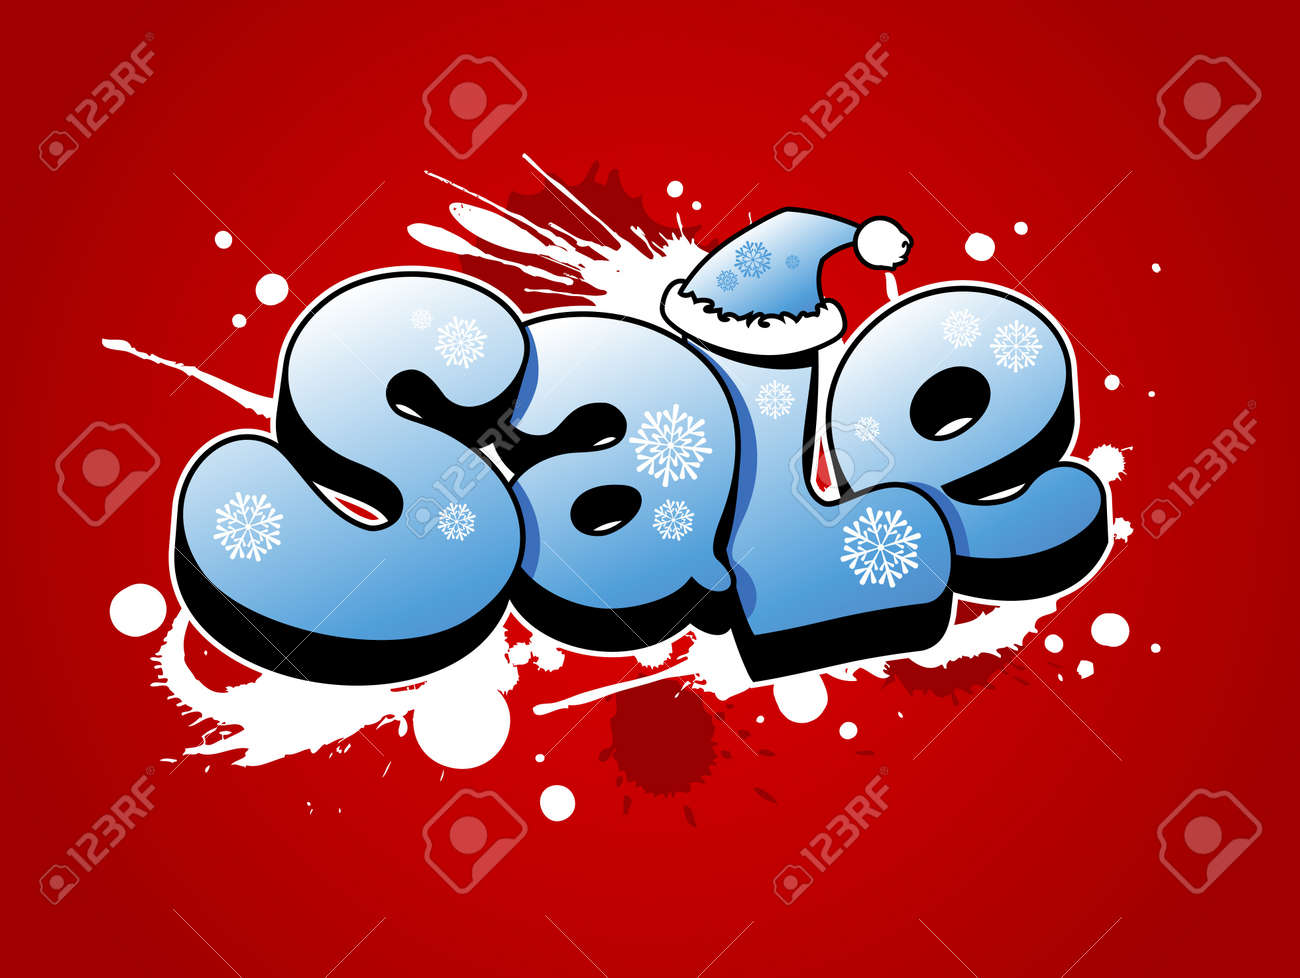 Christmas sale vector illustration with snow splashes. Stock Vector - 11261906